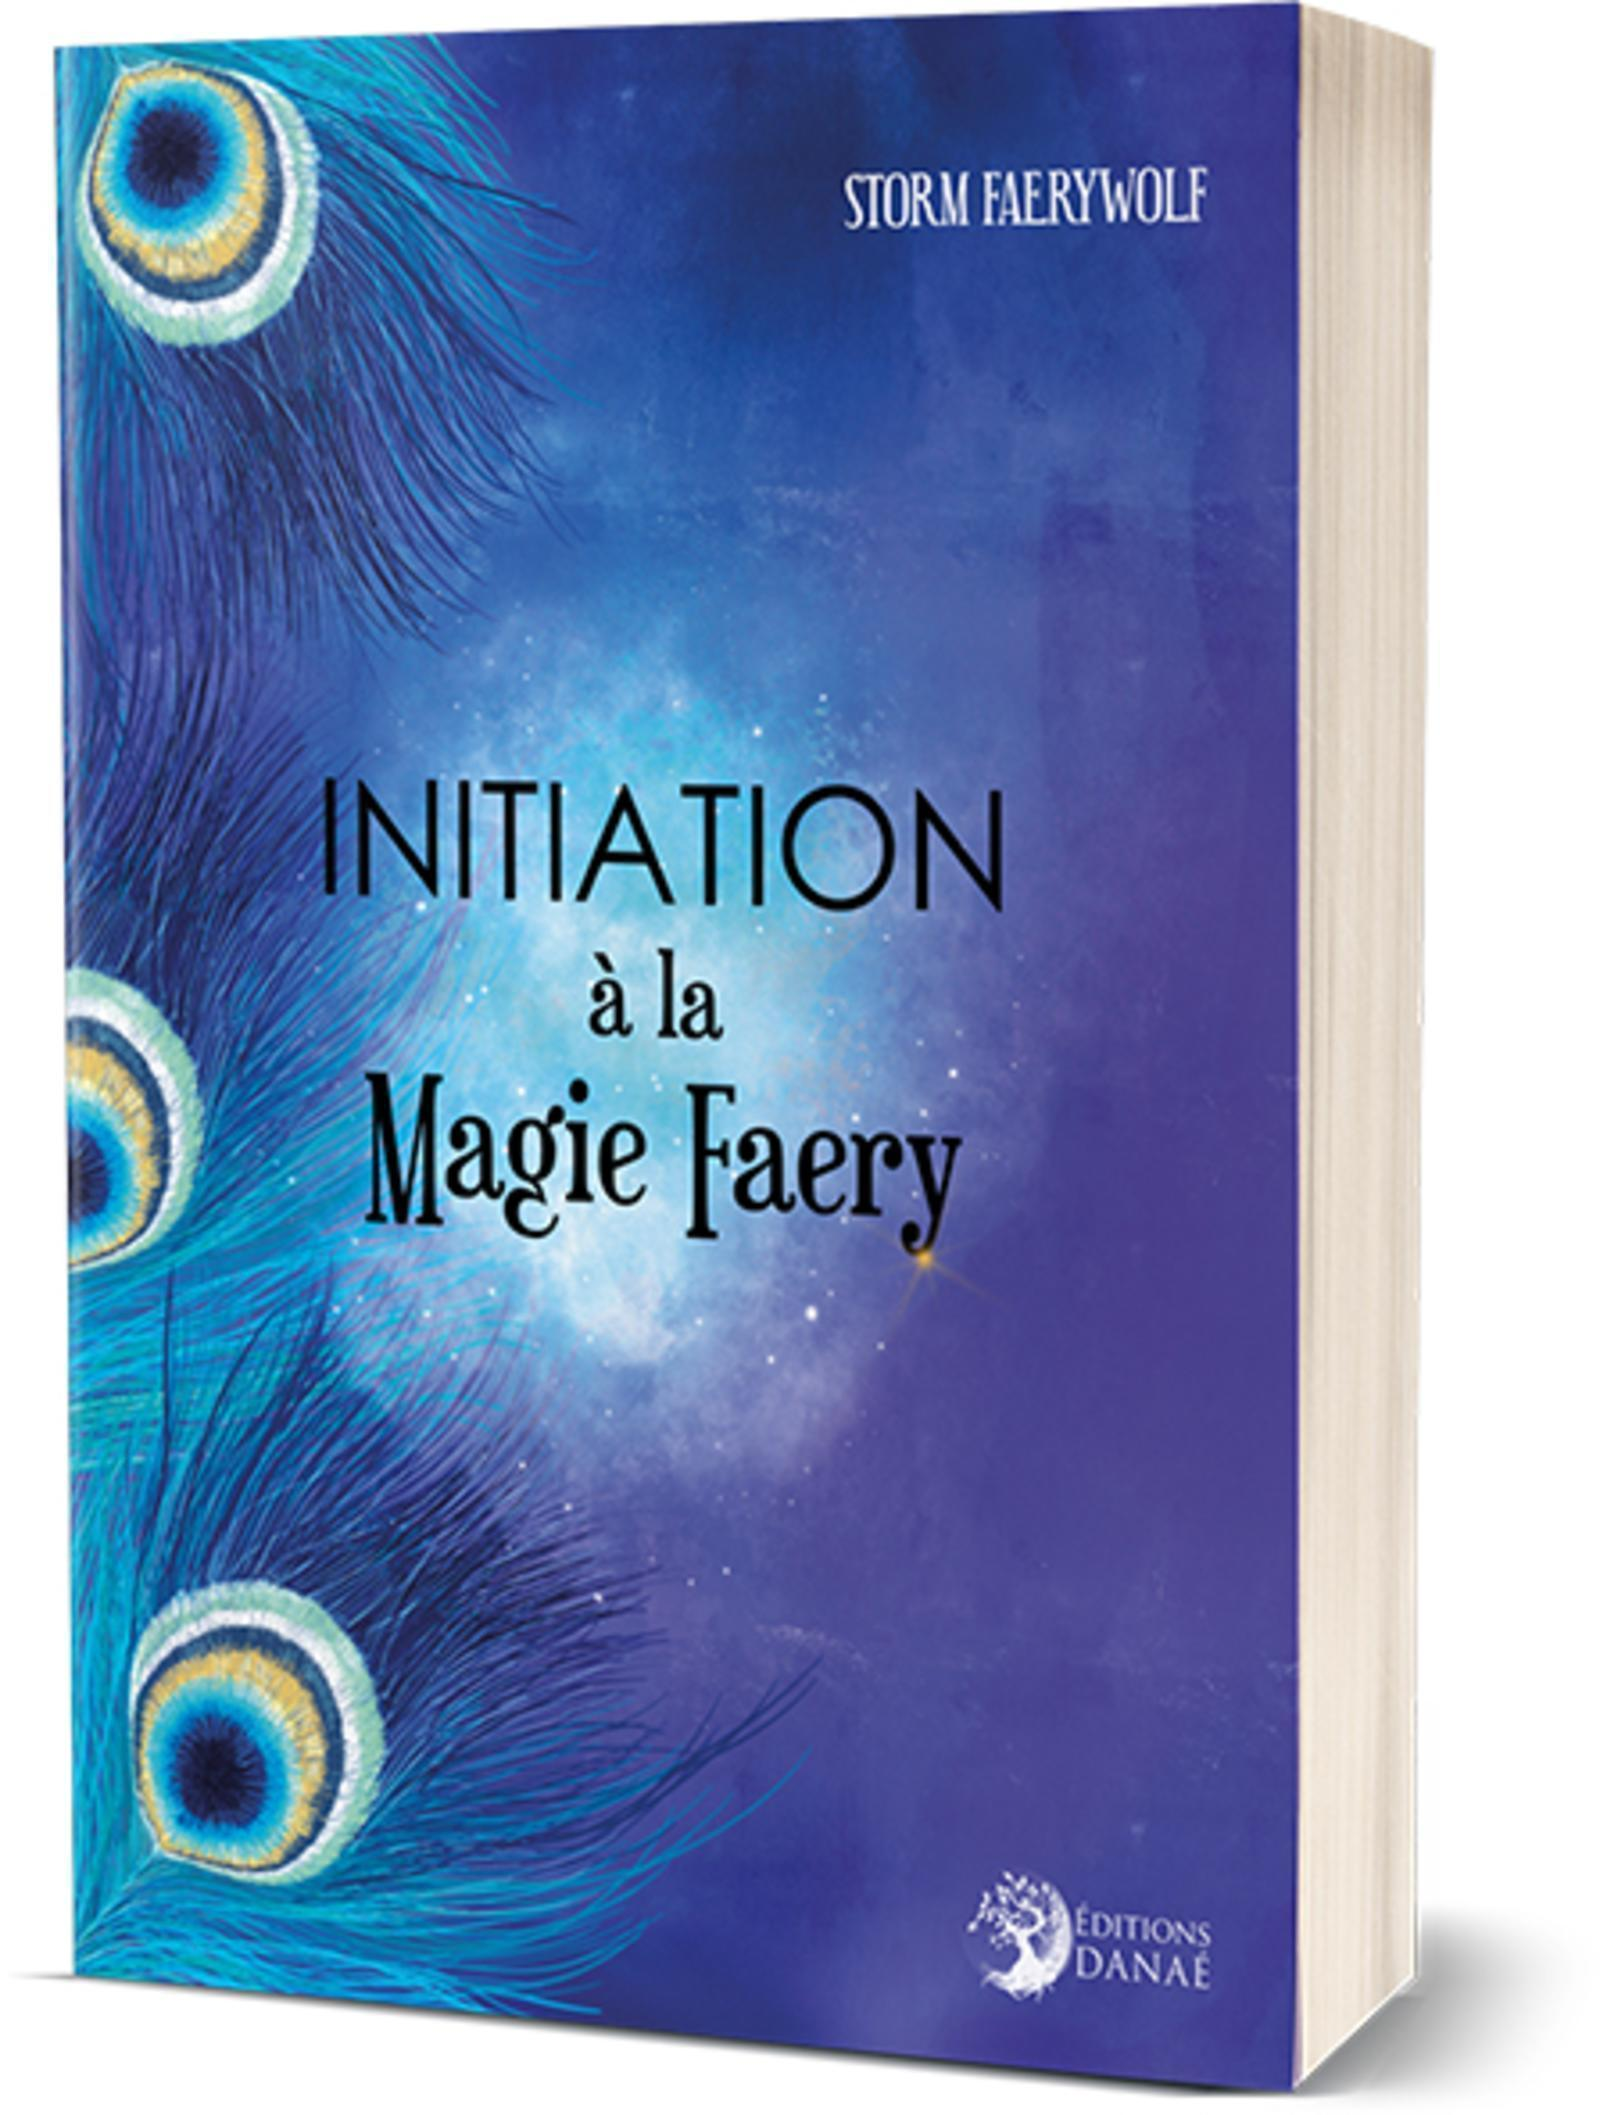 INITIATION A LA MAGIE FAERY